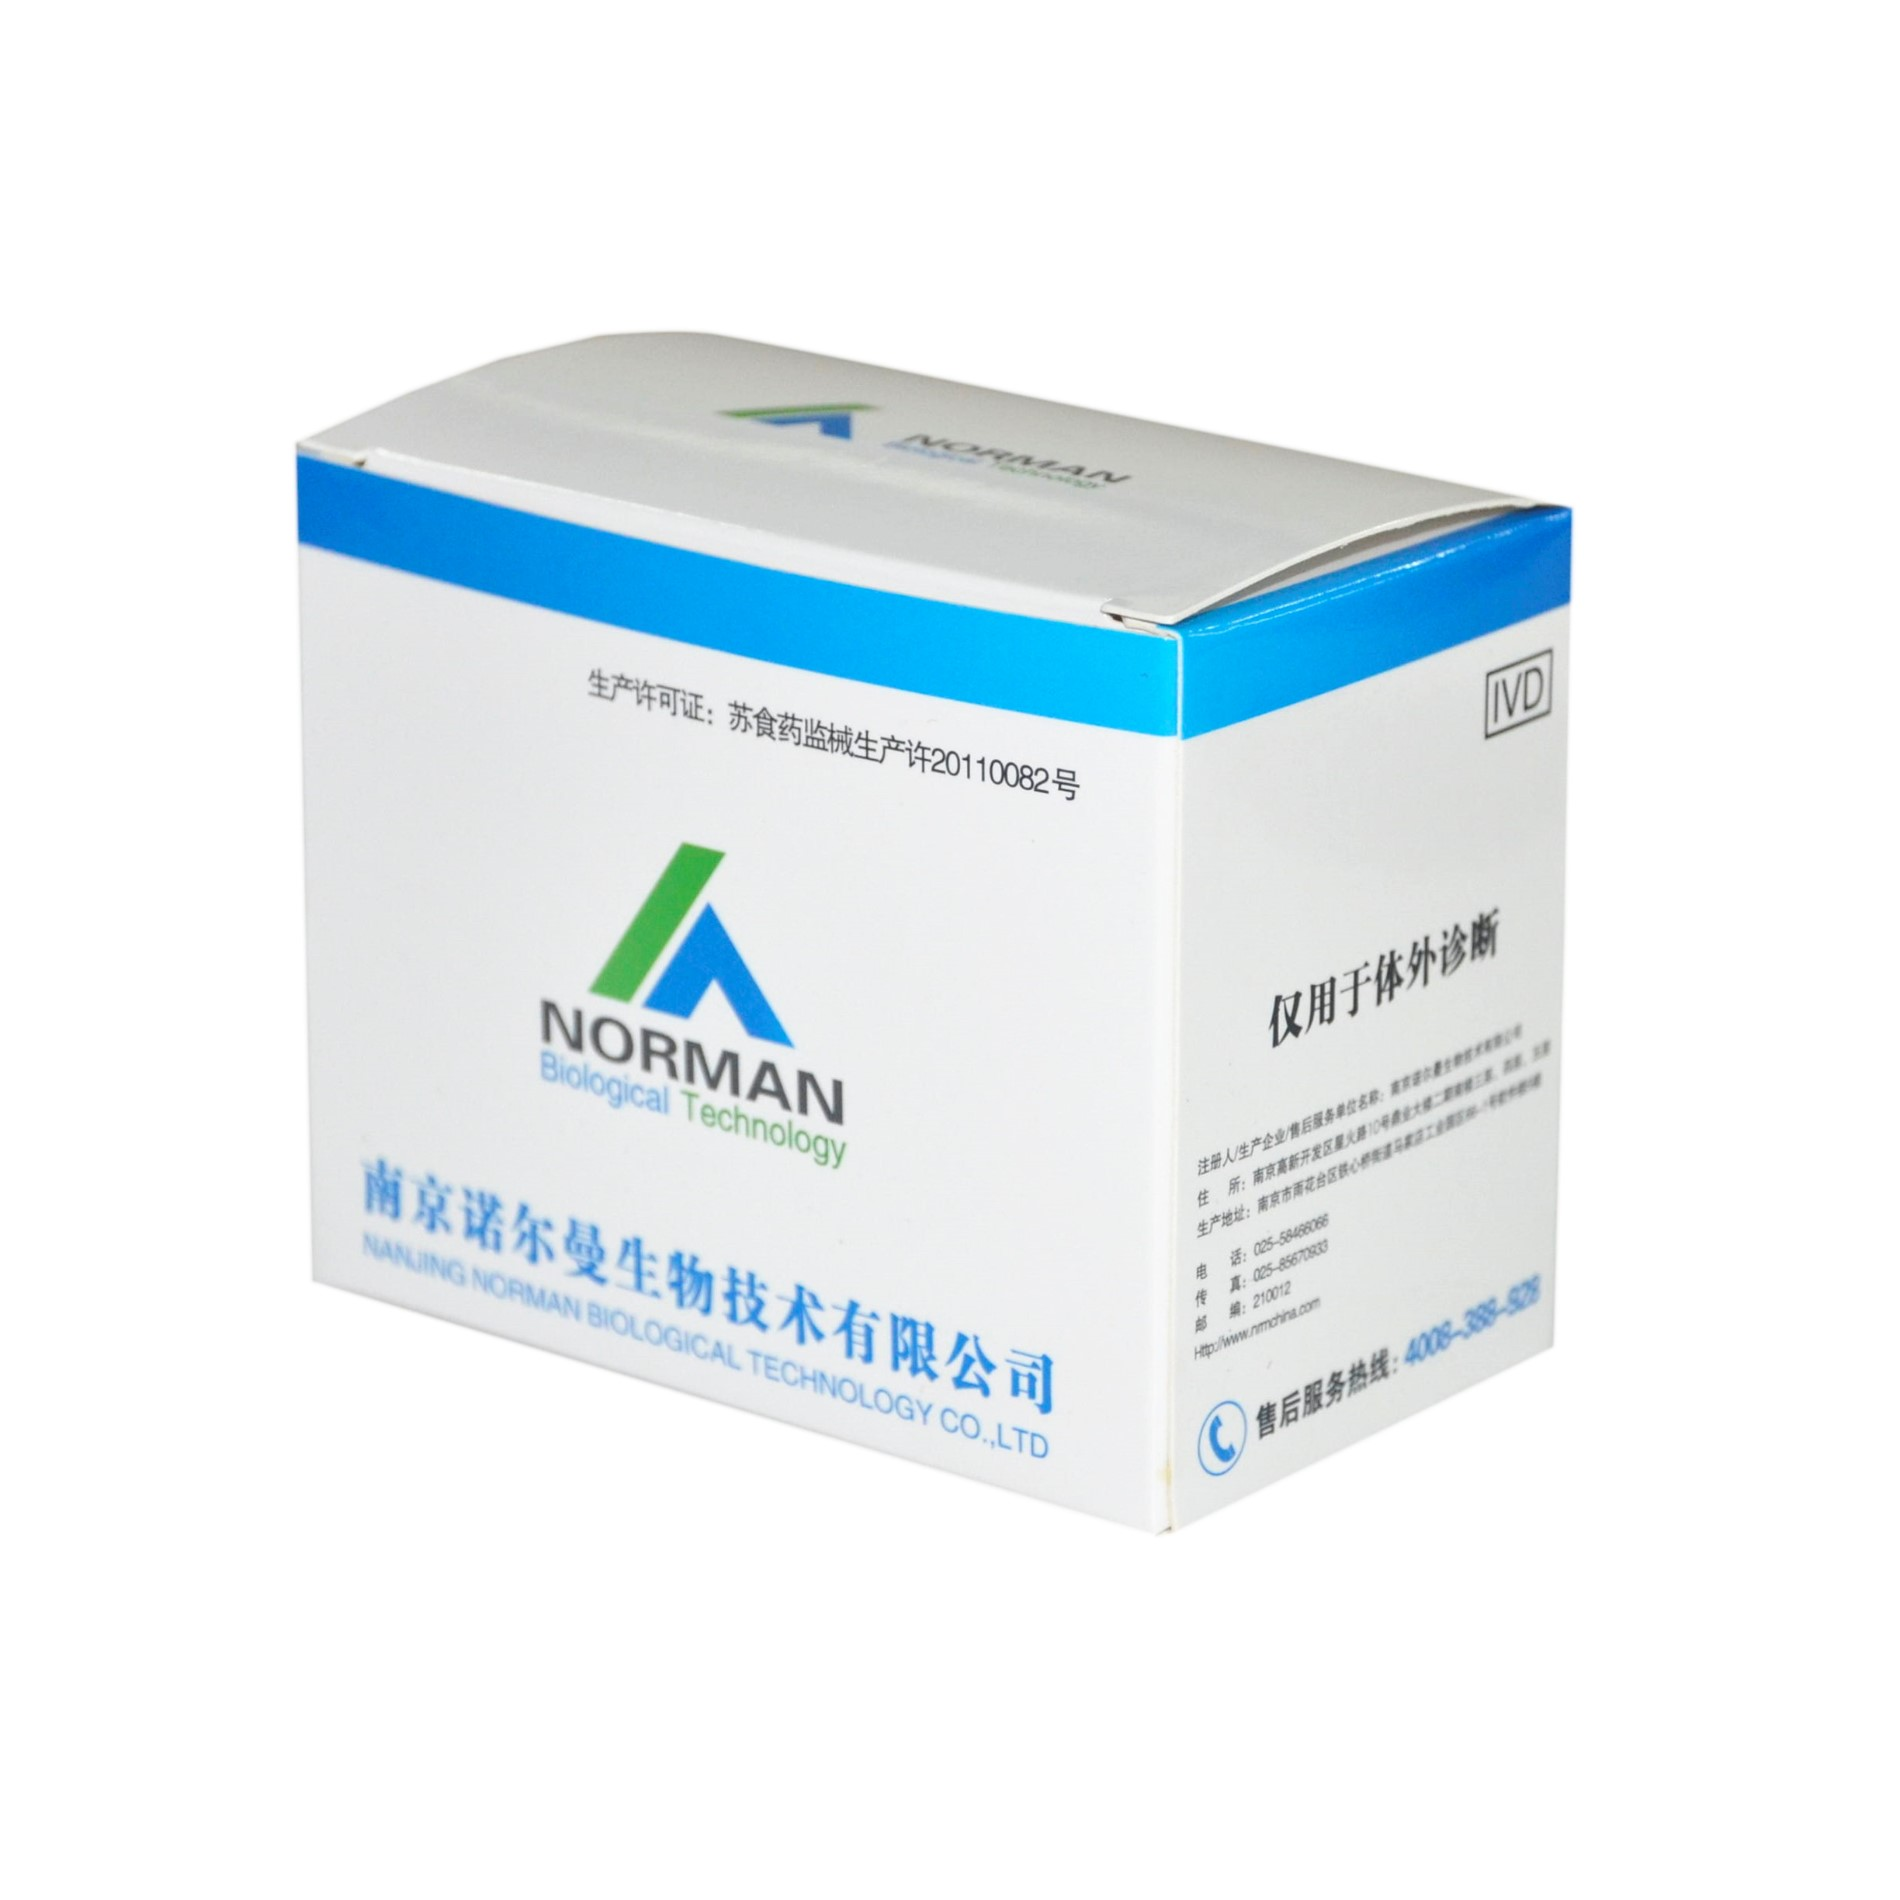 Kidney Function Quantitative In Vitro Diagnostic Rapid Test Kits For Ngal Poct Manufacturers, Kidney Function Quantitative In Vitro Diagnostic Rapid Test Kits For Ngal Poct Factory, Supply Kidney Function Quantitative In Vitro Diagnostic Rapid Test Kits For Ngal Poct